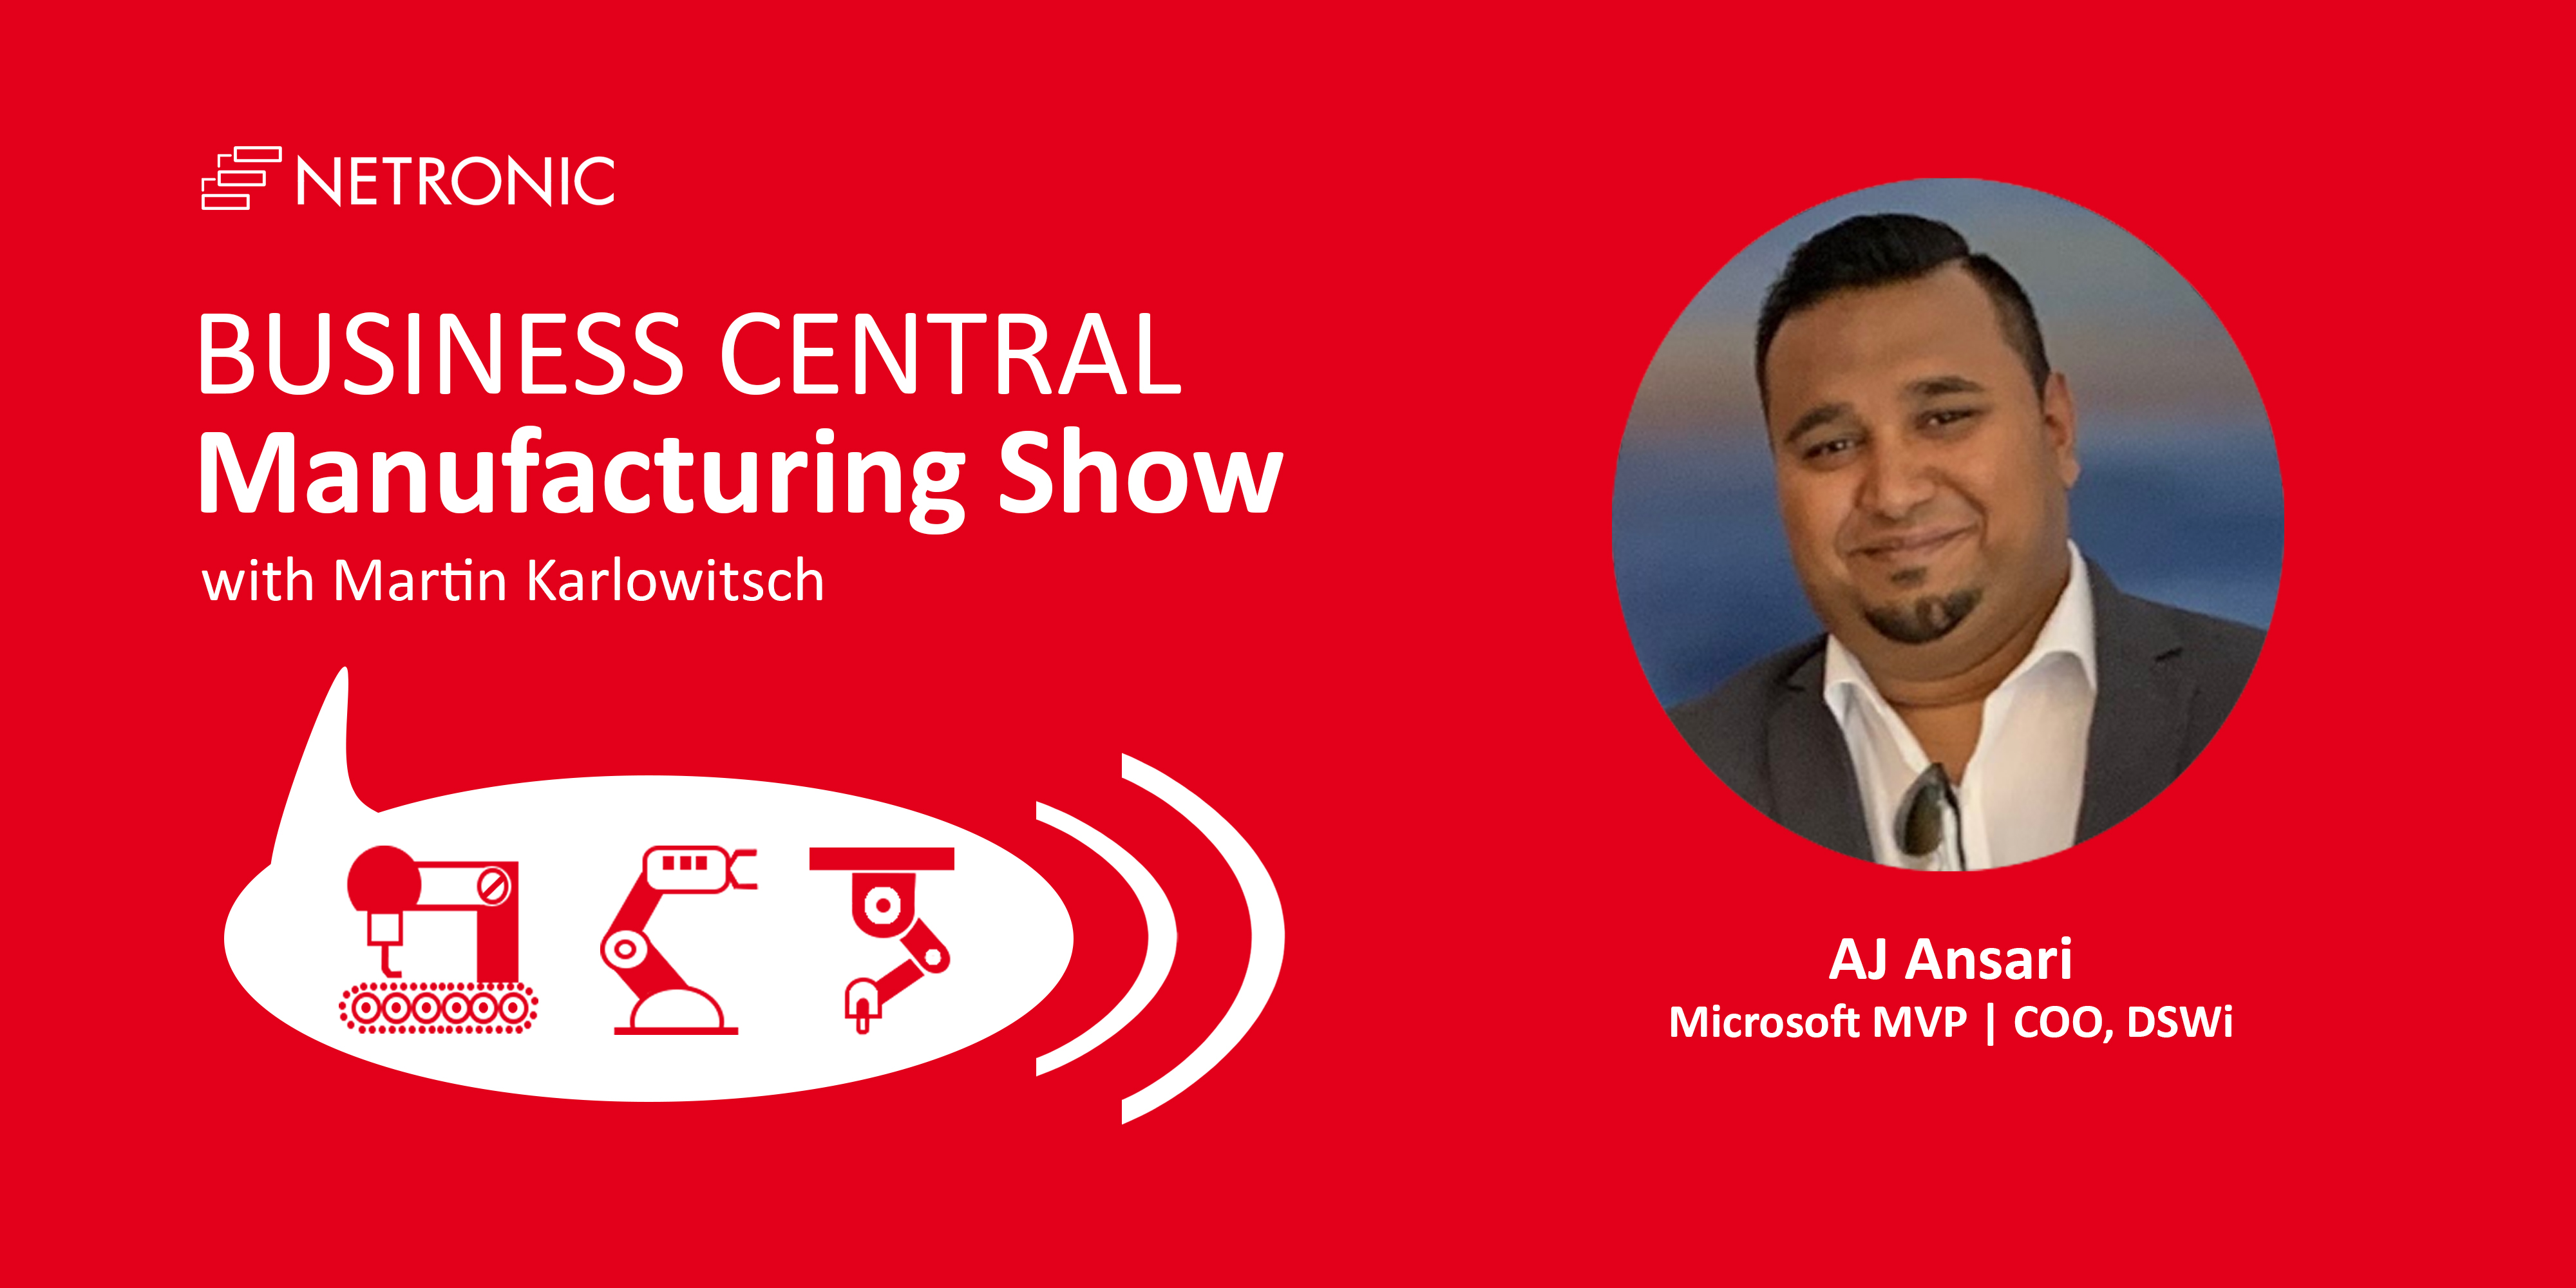 Business Central Manufacturing Show - Episode 3 - AJ Ansari